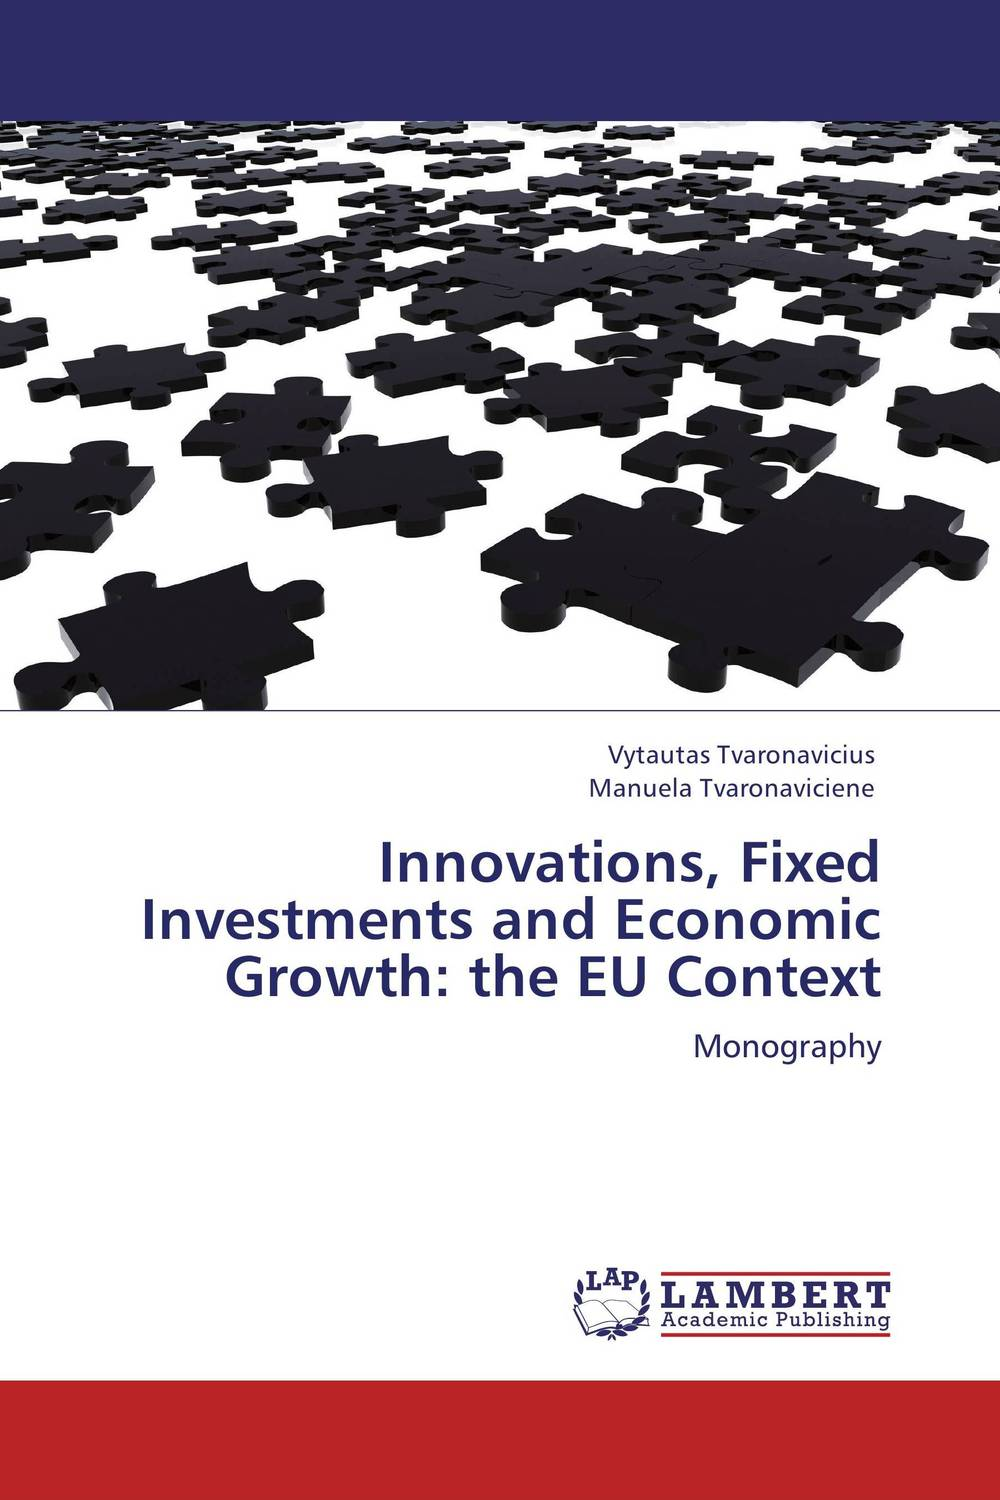 Innovations, Fixed Investments and Economic Growth: the EU Context innovations fixed investments and economic growth the eu context